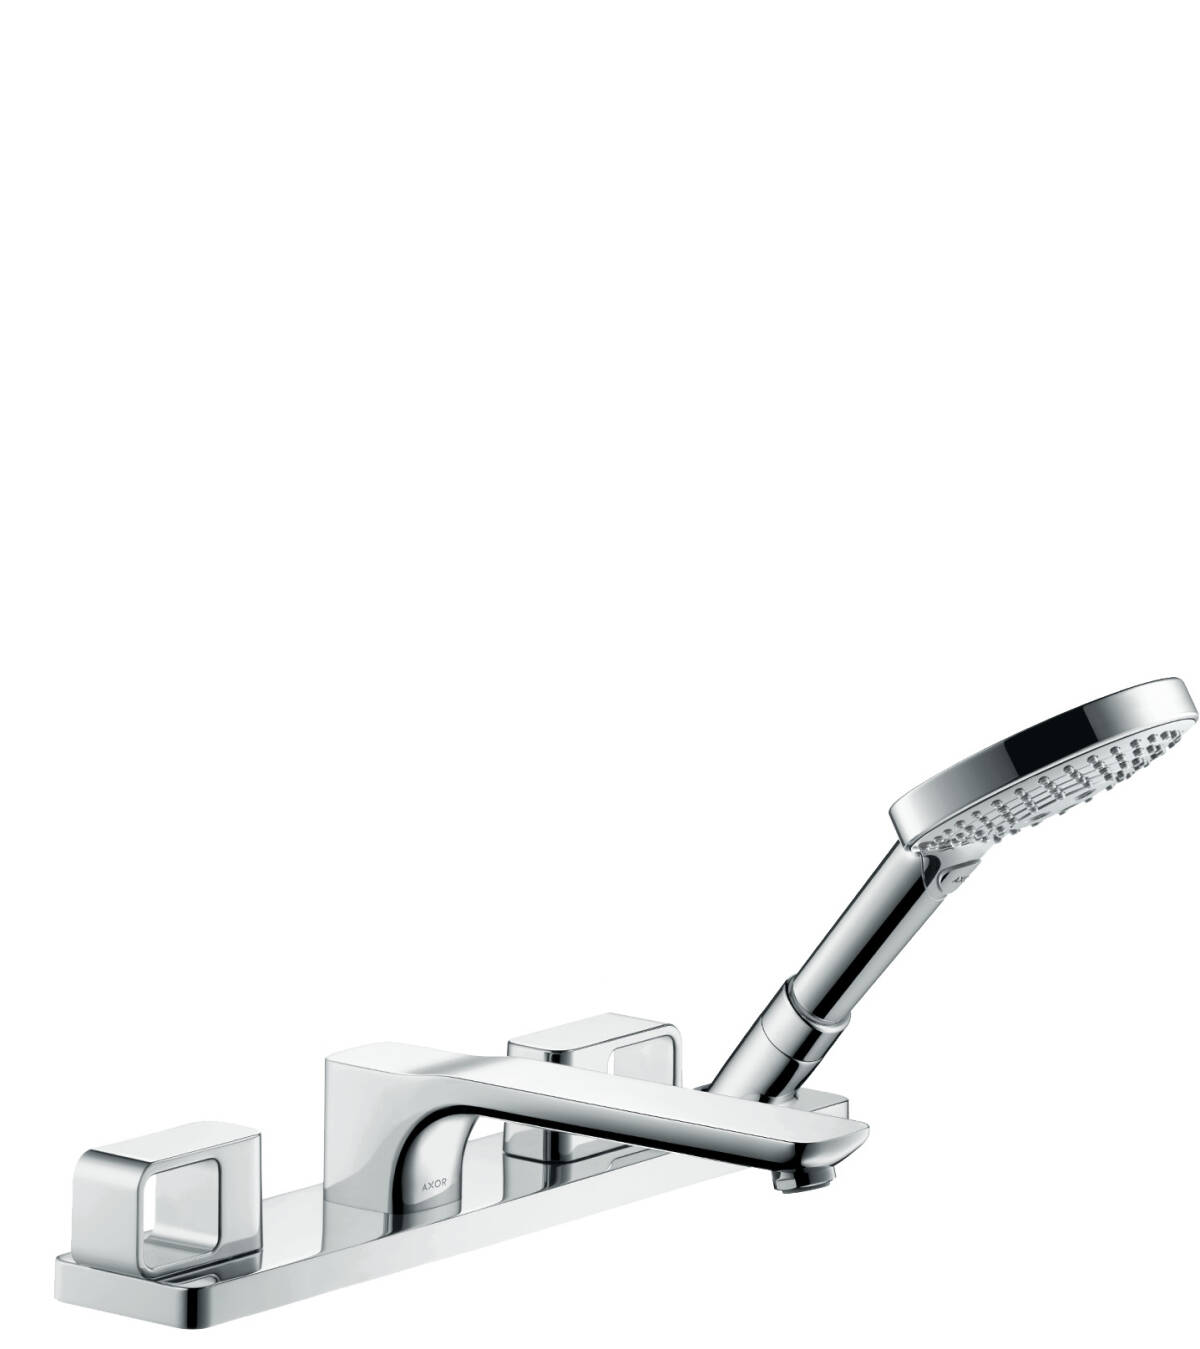 4-hole tile mounted bath mixer, Polished Gold Optic, 11445990